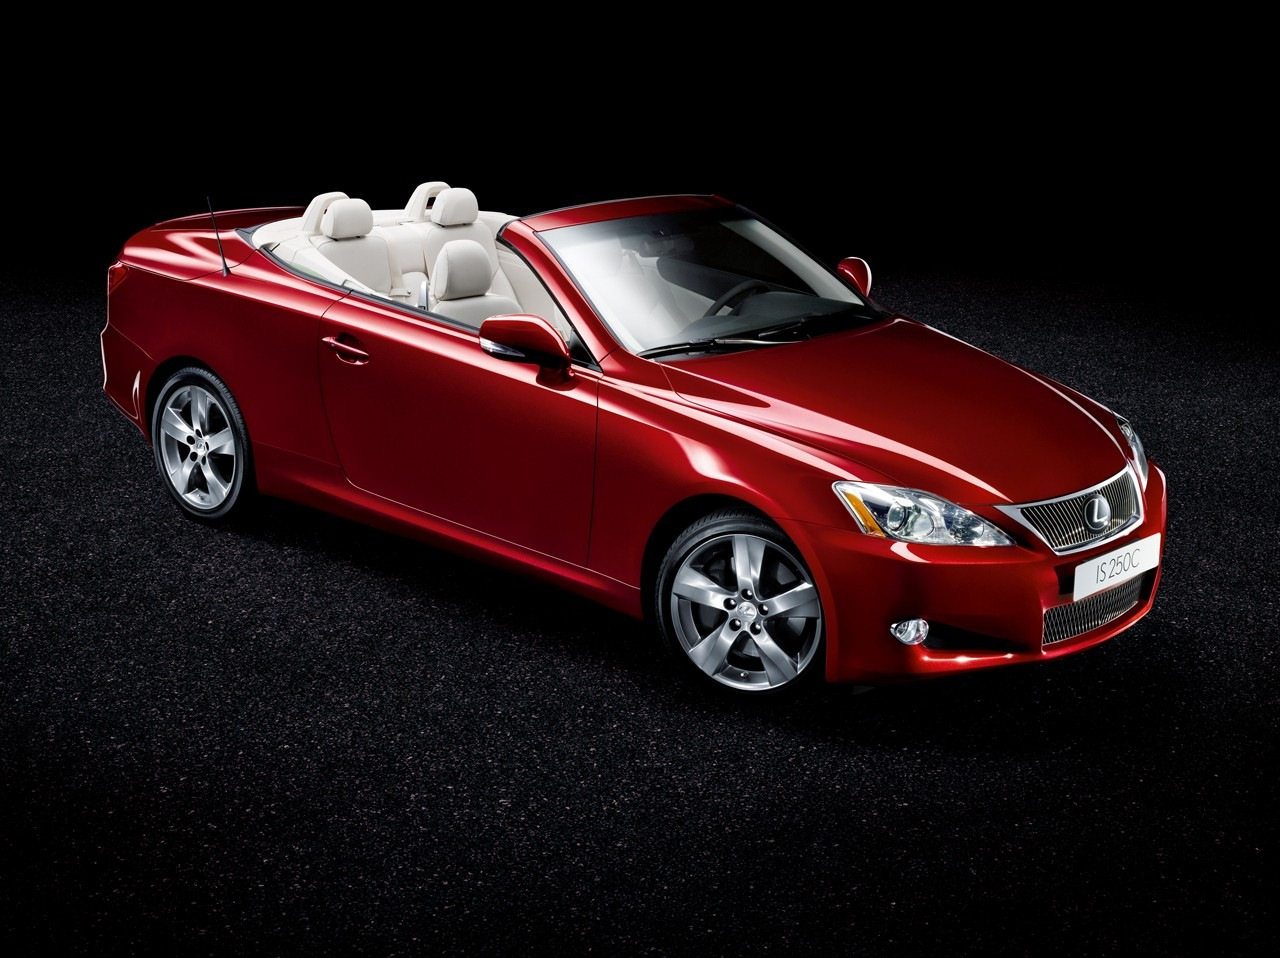 Lexus IS 250 2009